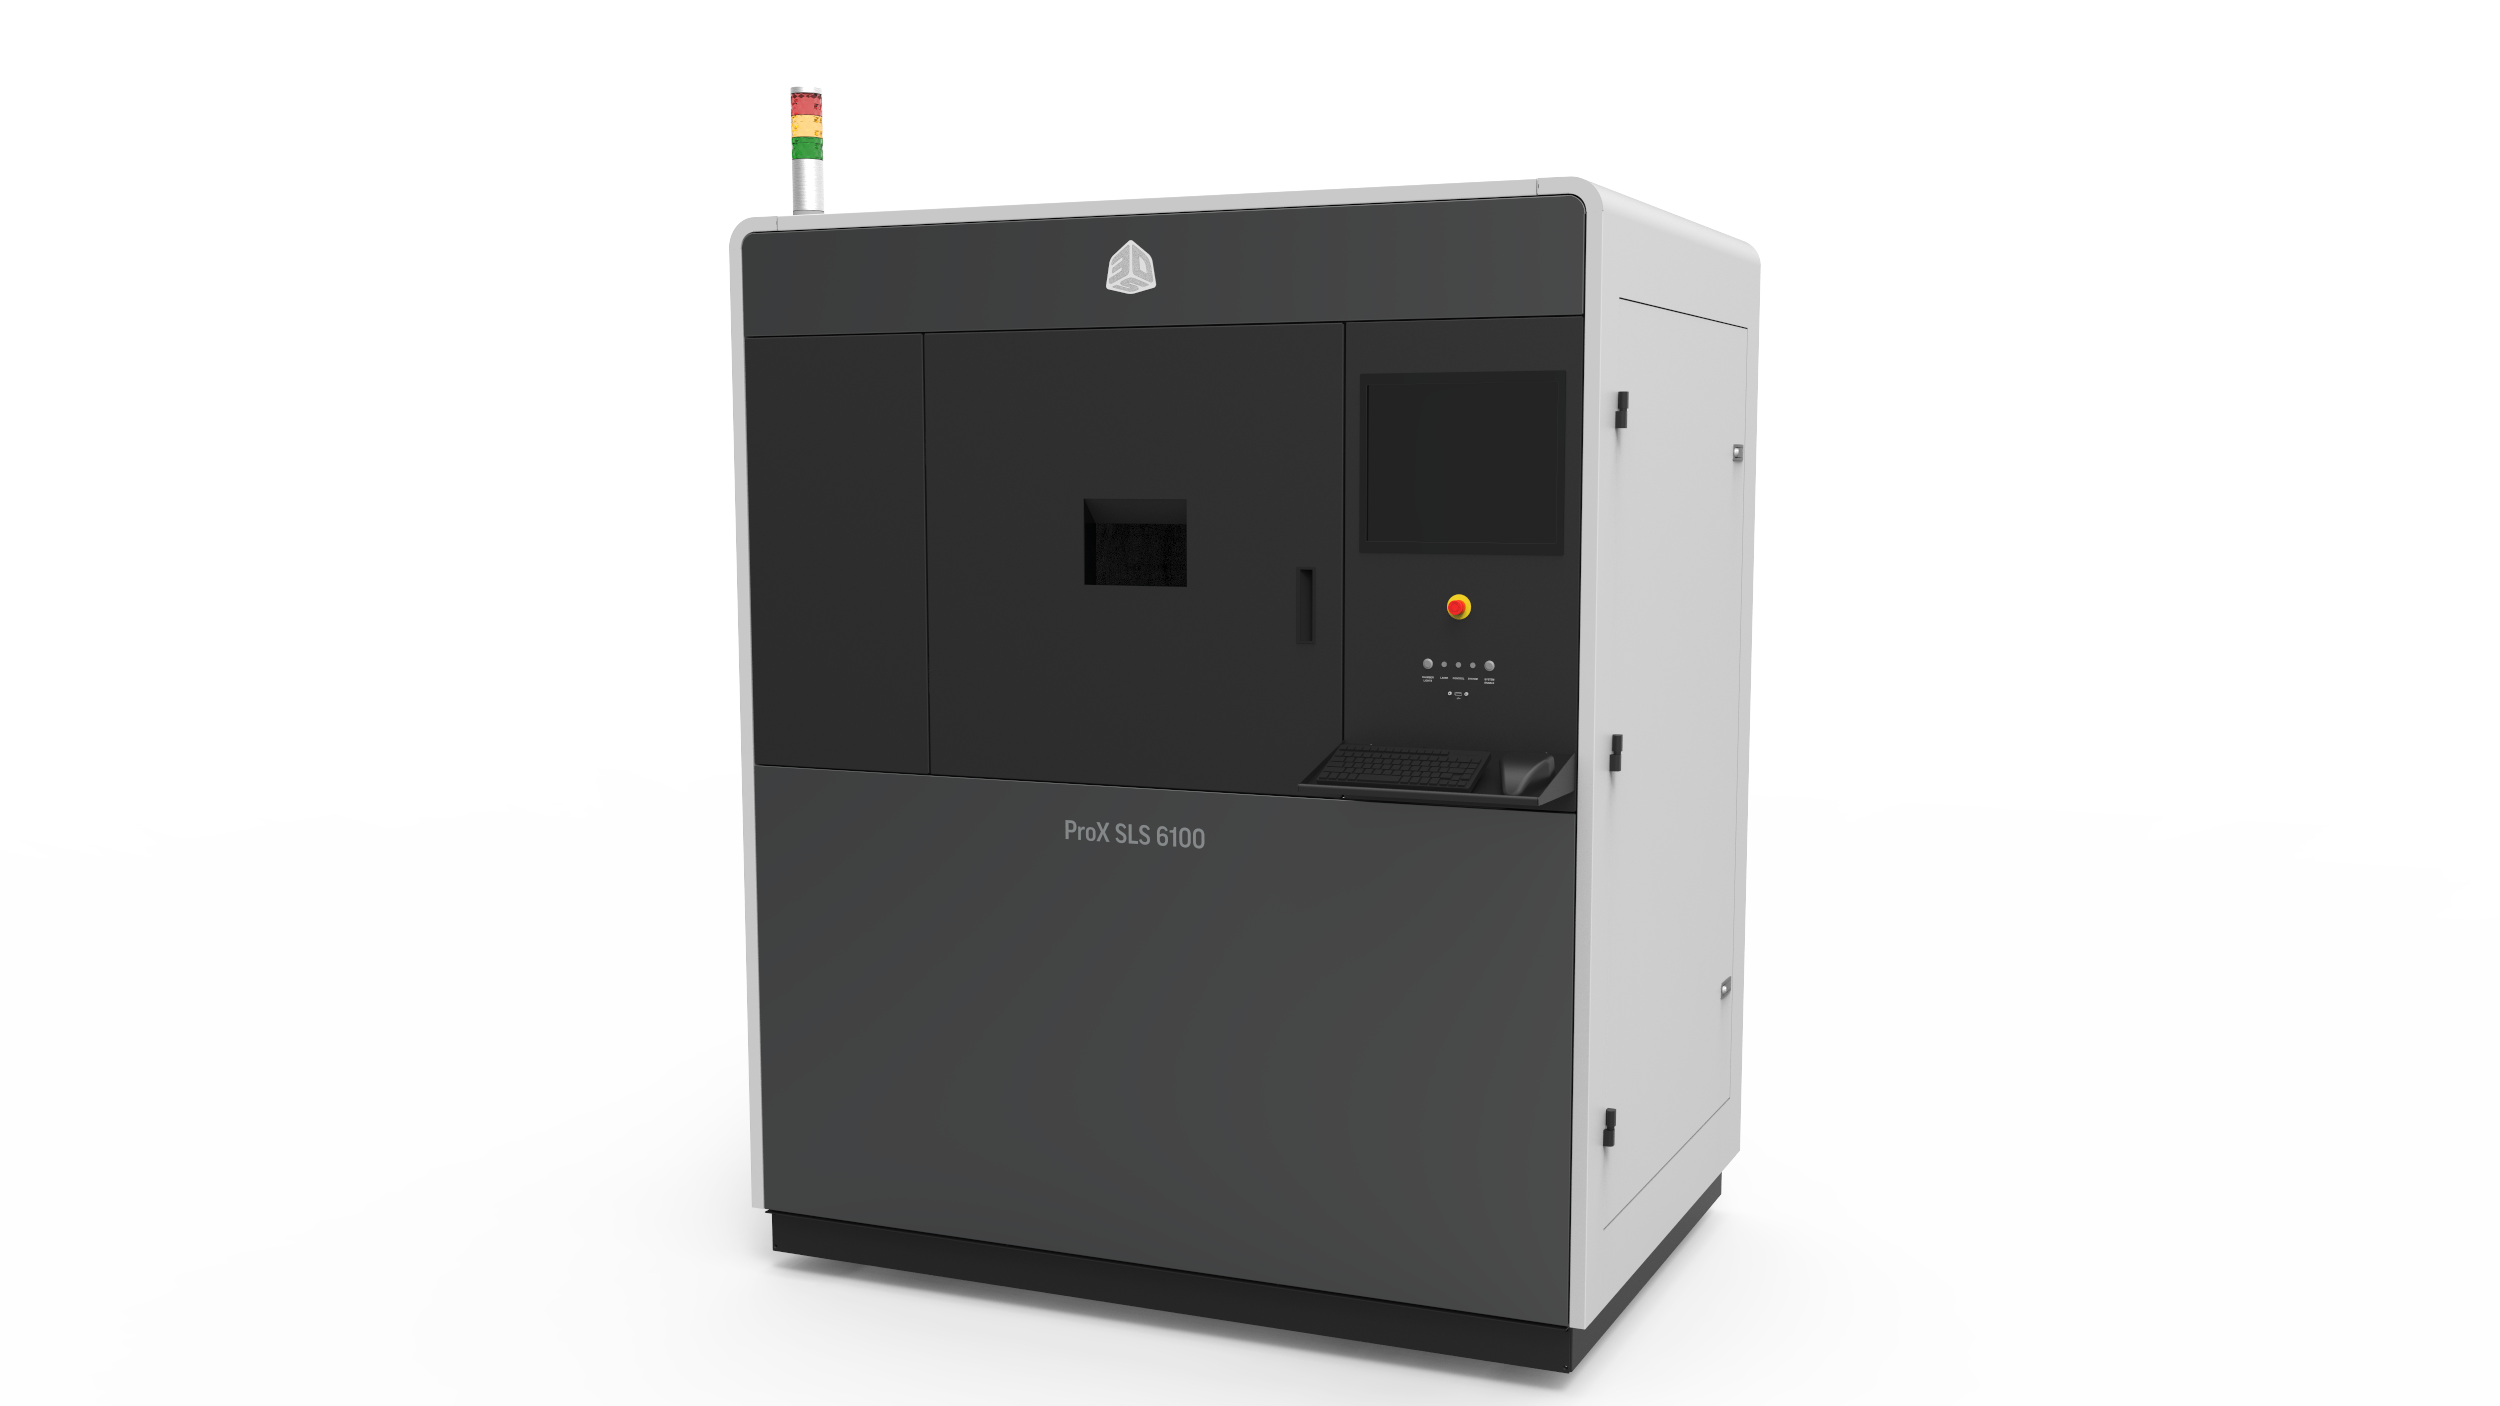 3D Systems Revamps Portfolio With New 3D Printing Systems, Materials, and Software | All3DP